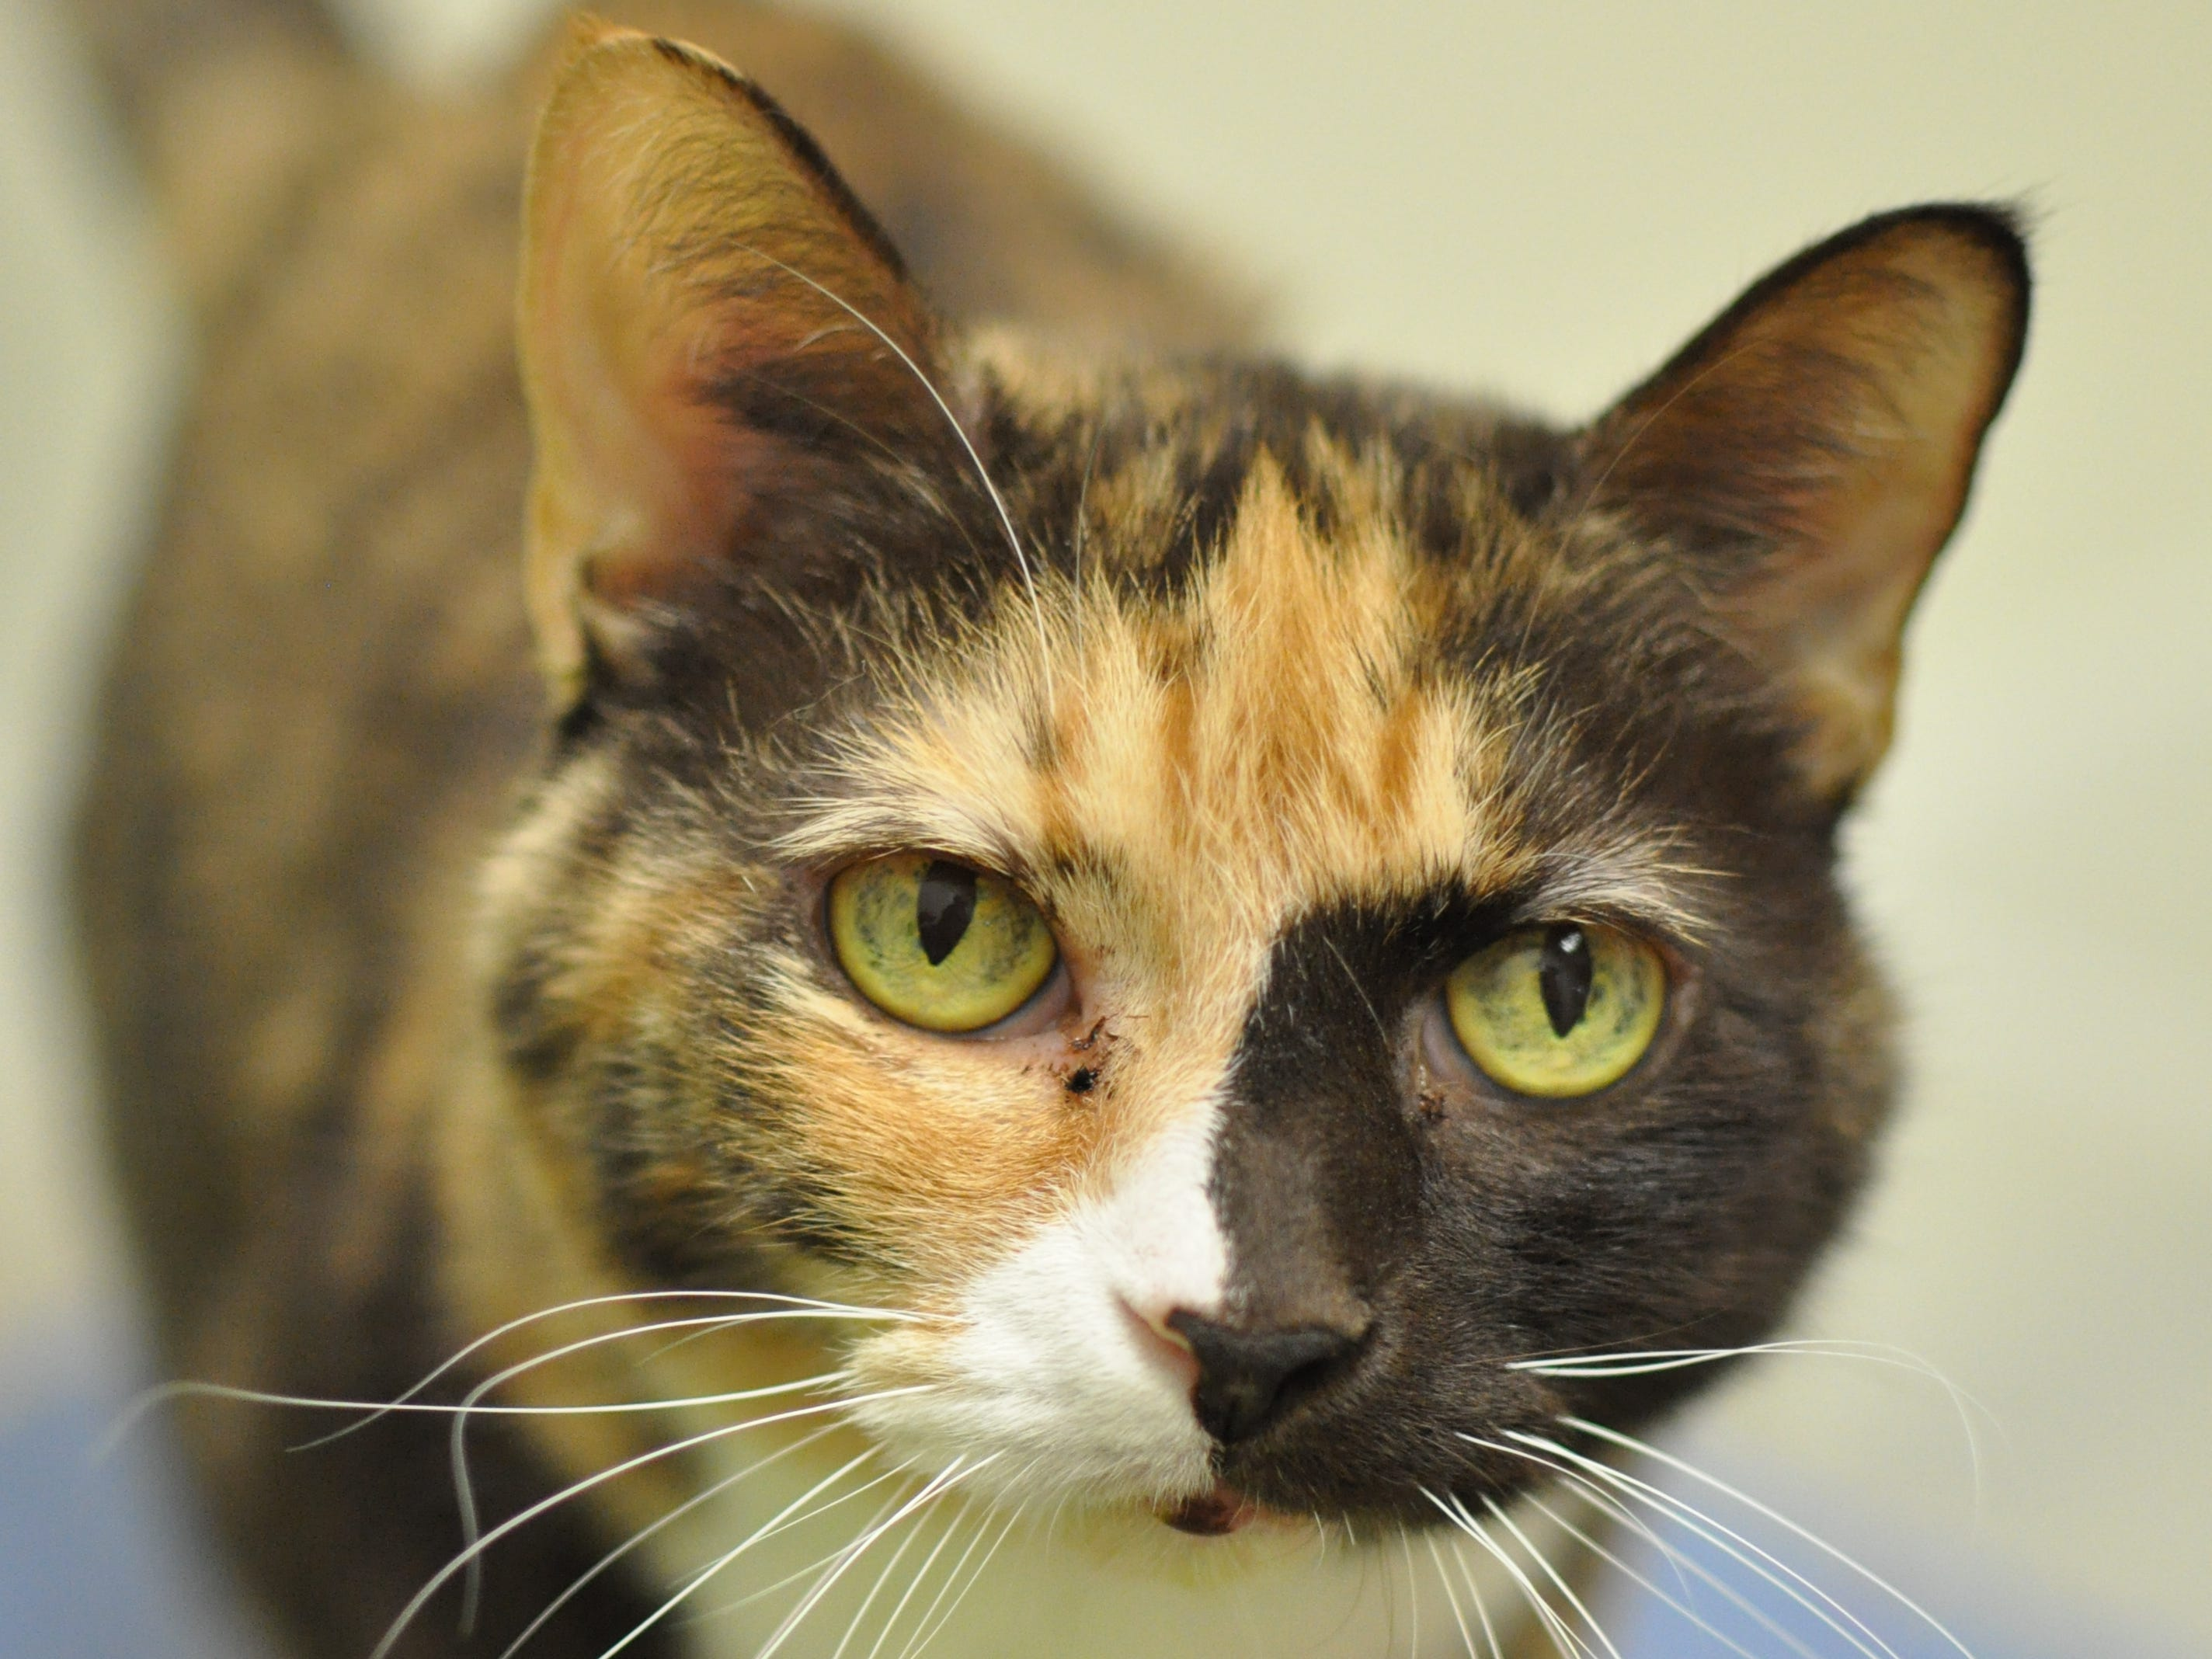 Lily, 13, is sweet and sensitive and wants to find her forever home. She is spayed.